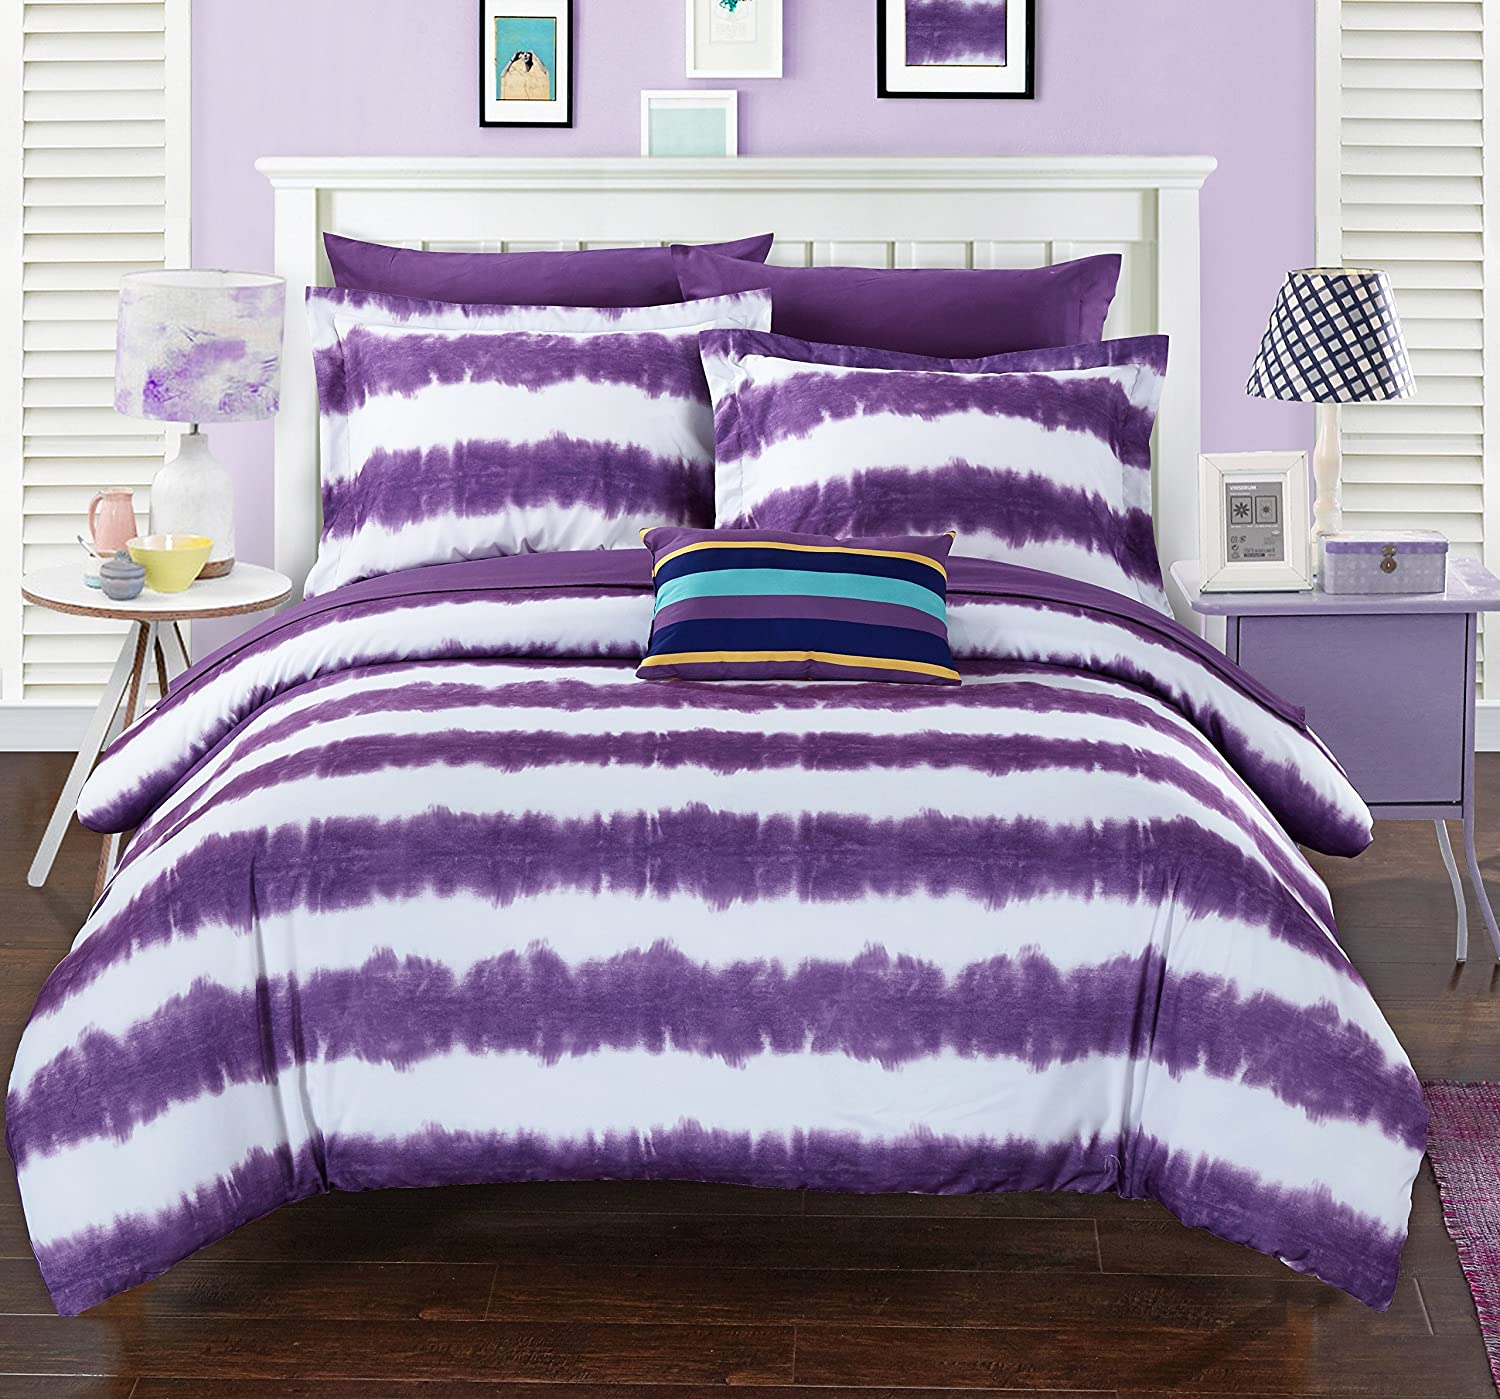 Chic Home 7 Piece Benjamin Striped hand dipped Shibori Tie-Dye printed Twin X-Long Bed In a Bag Comforter Set